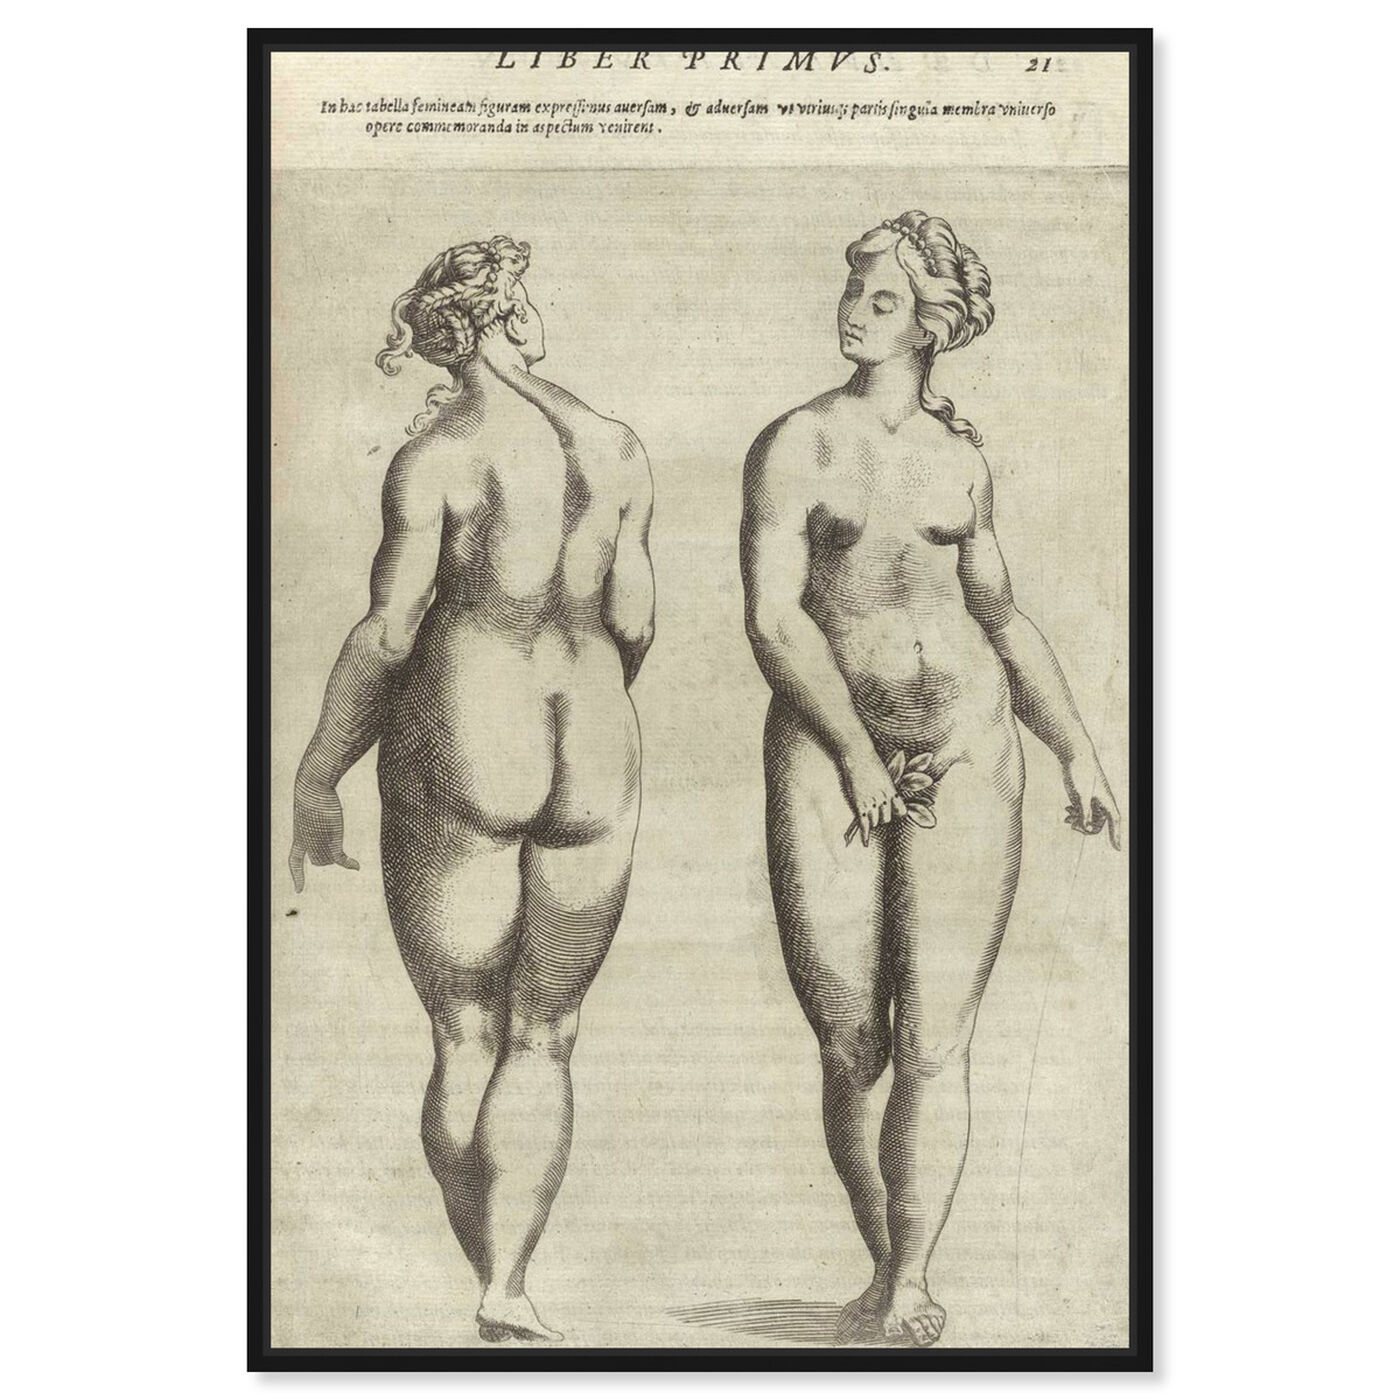 Front view of Liber Primvs - The Art Cabinet featuring classic and figurative and nudes art.